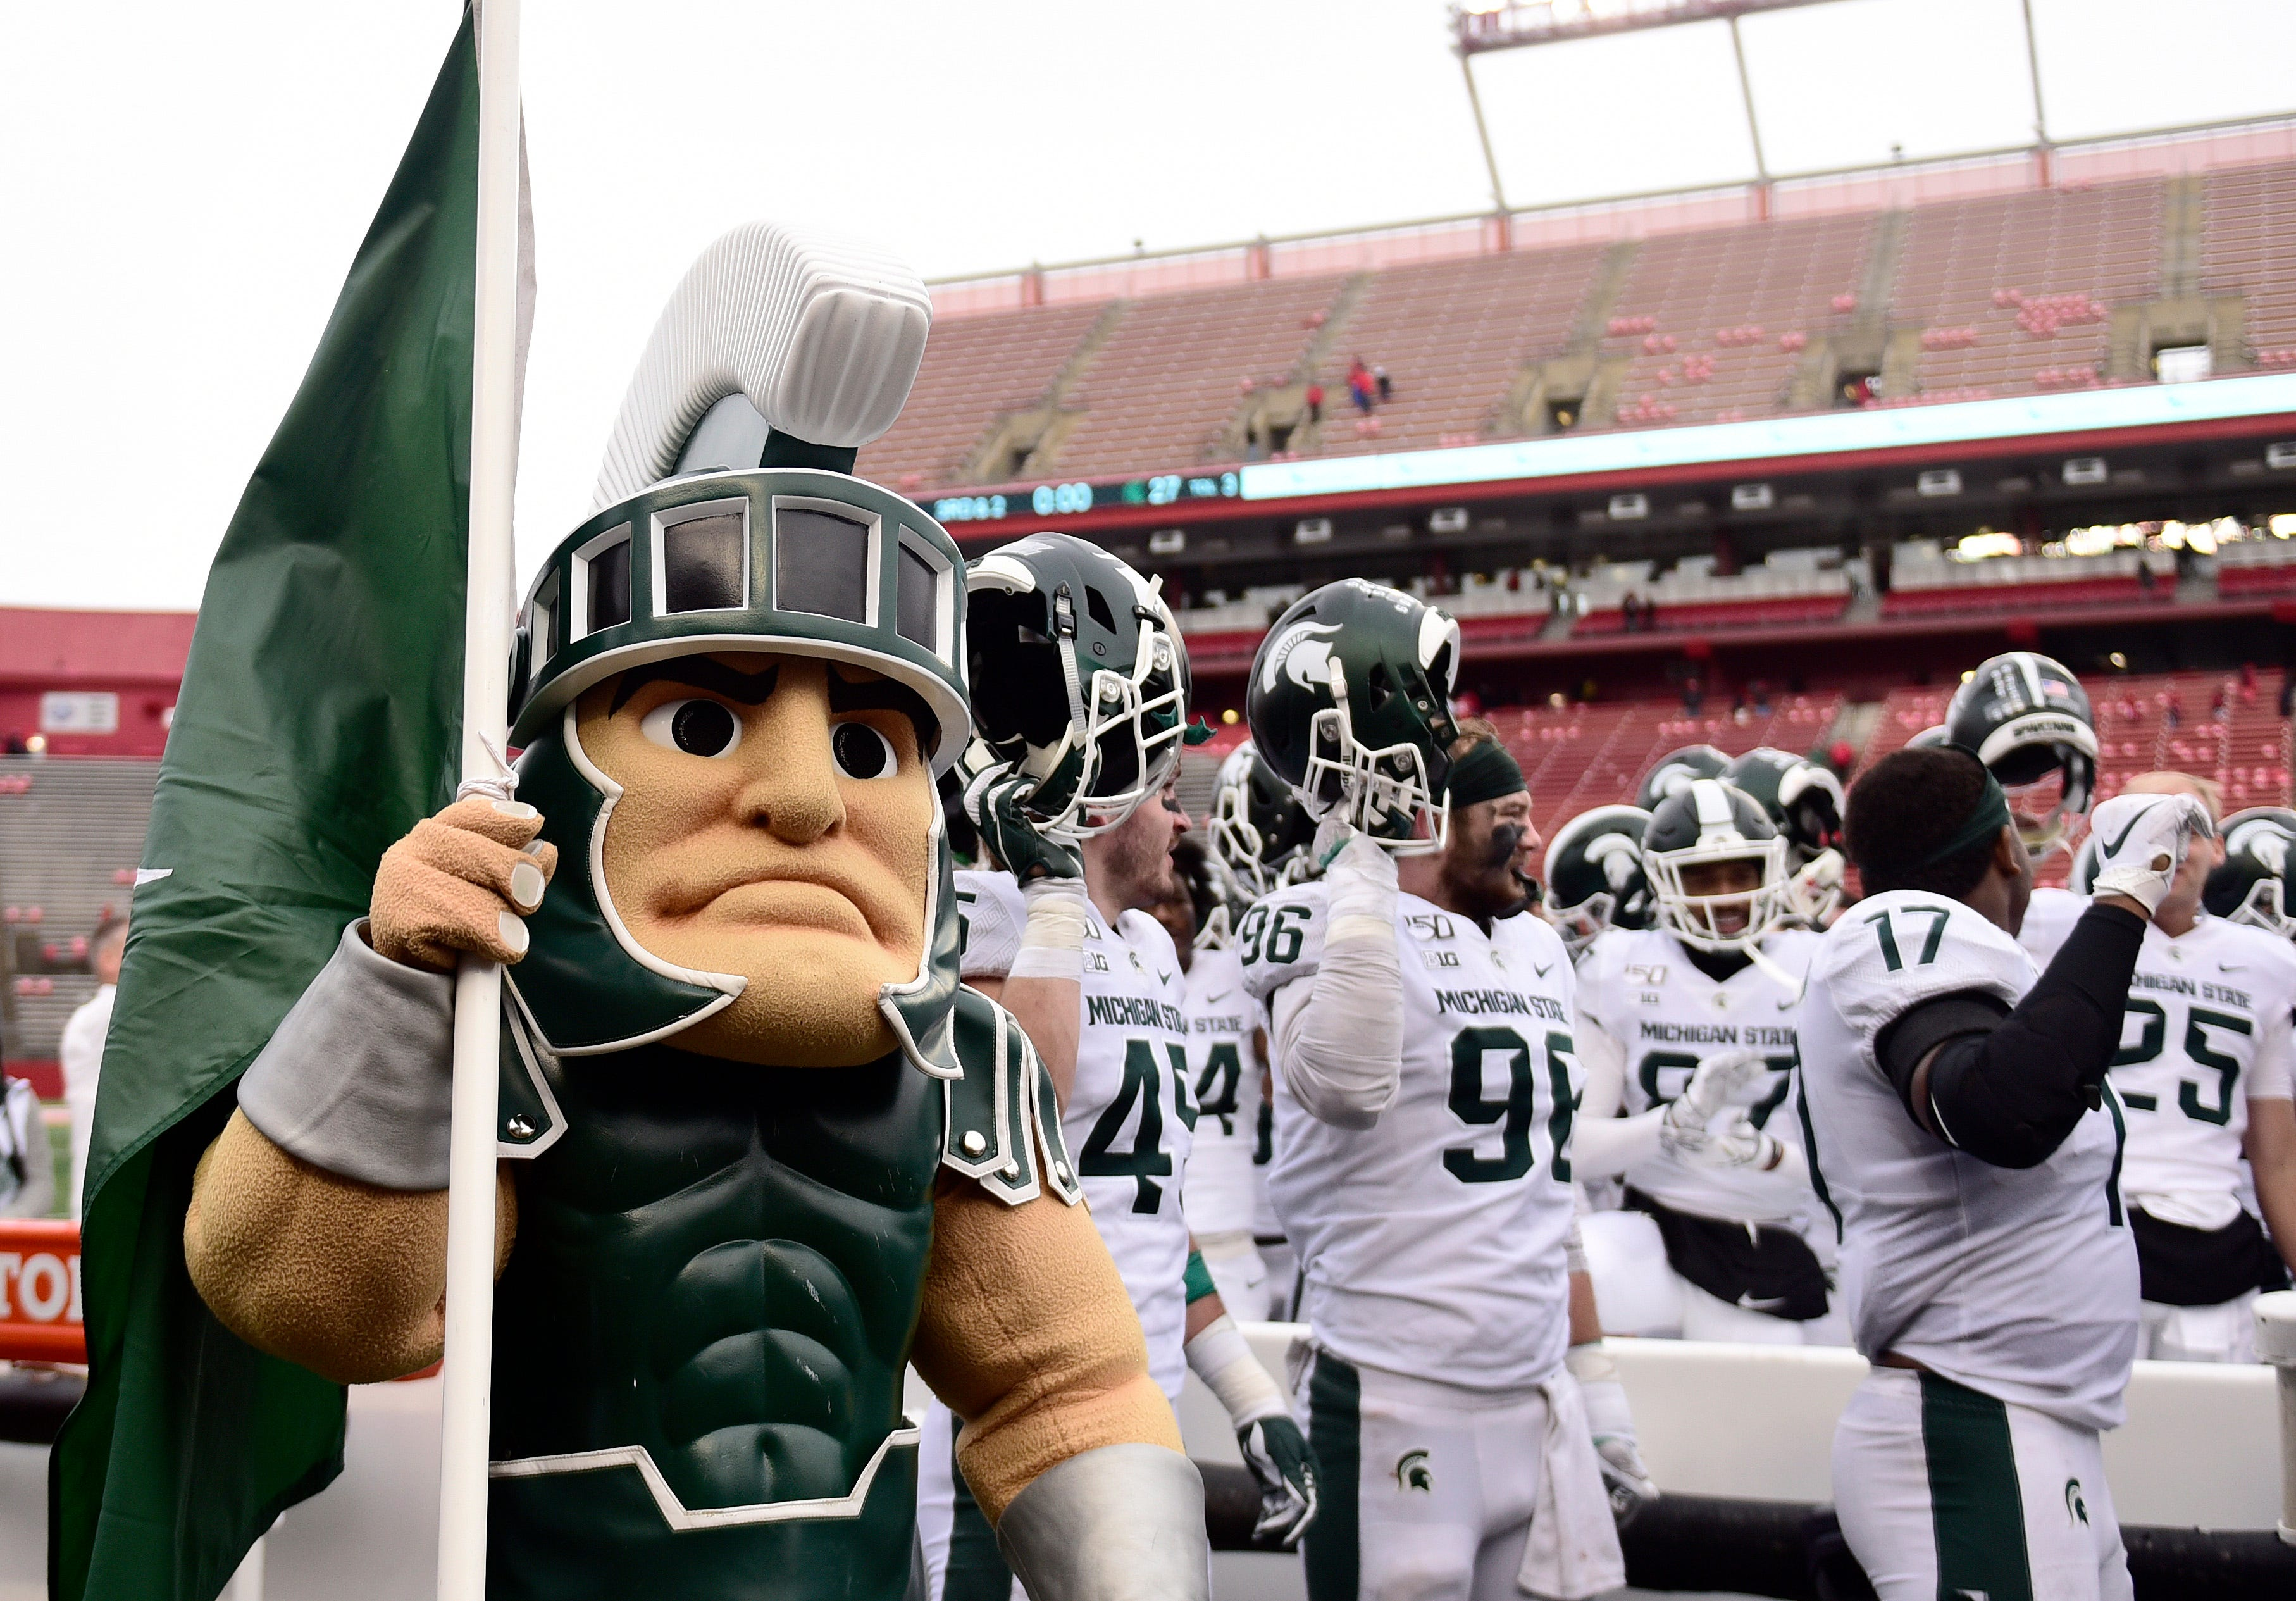 Two Michigan State football players suspended indefinitely